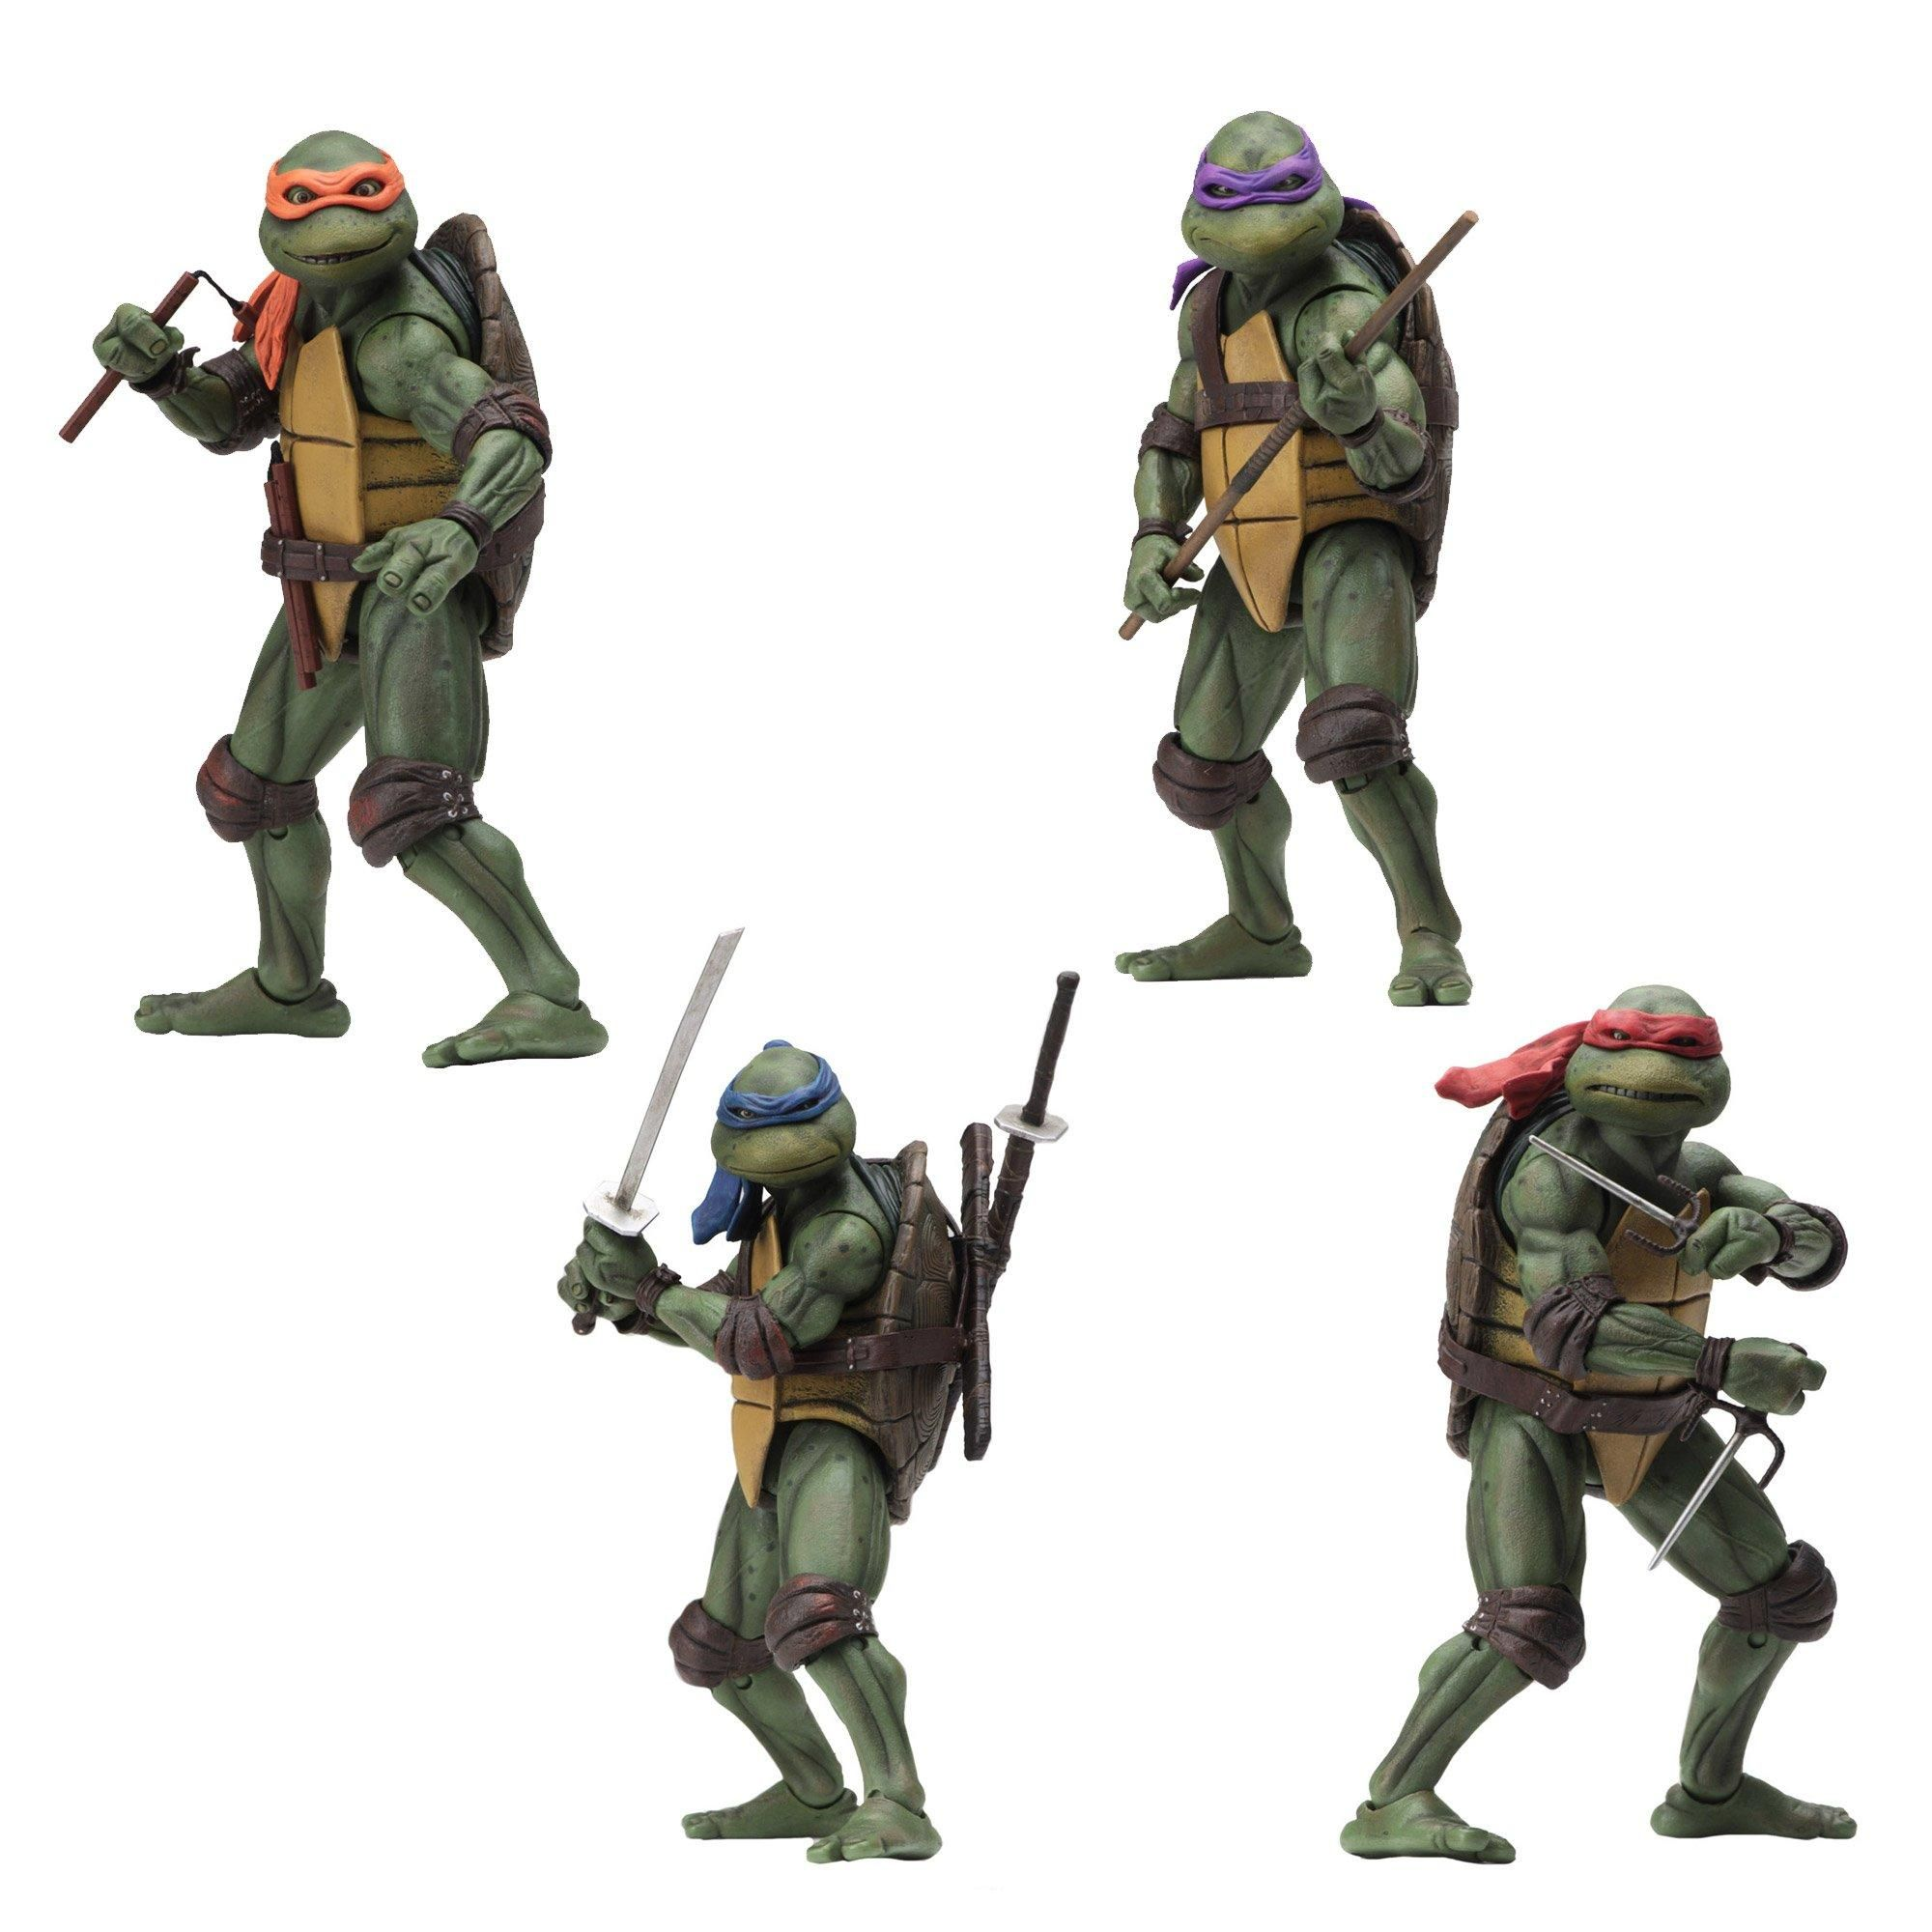 tmnt movie action figures